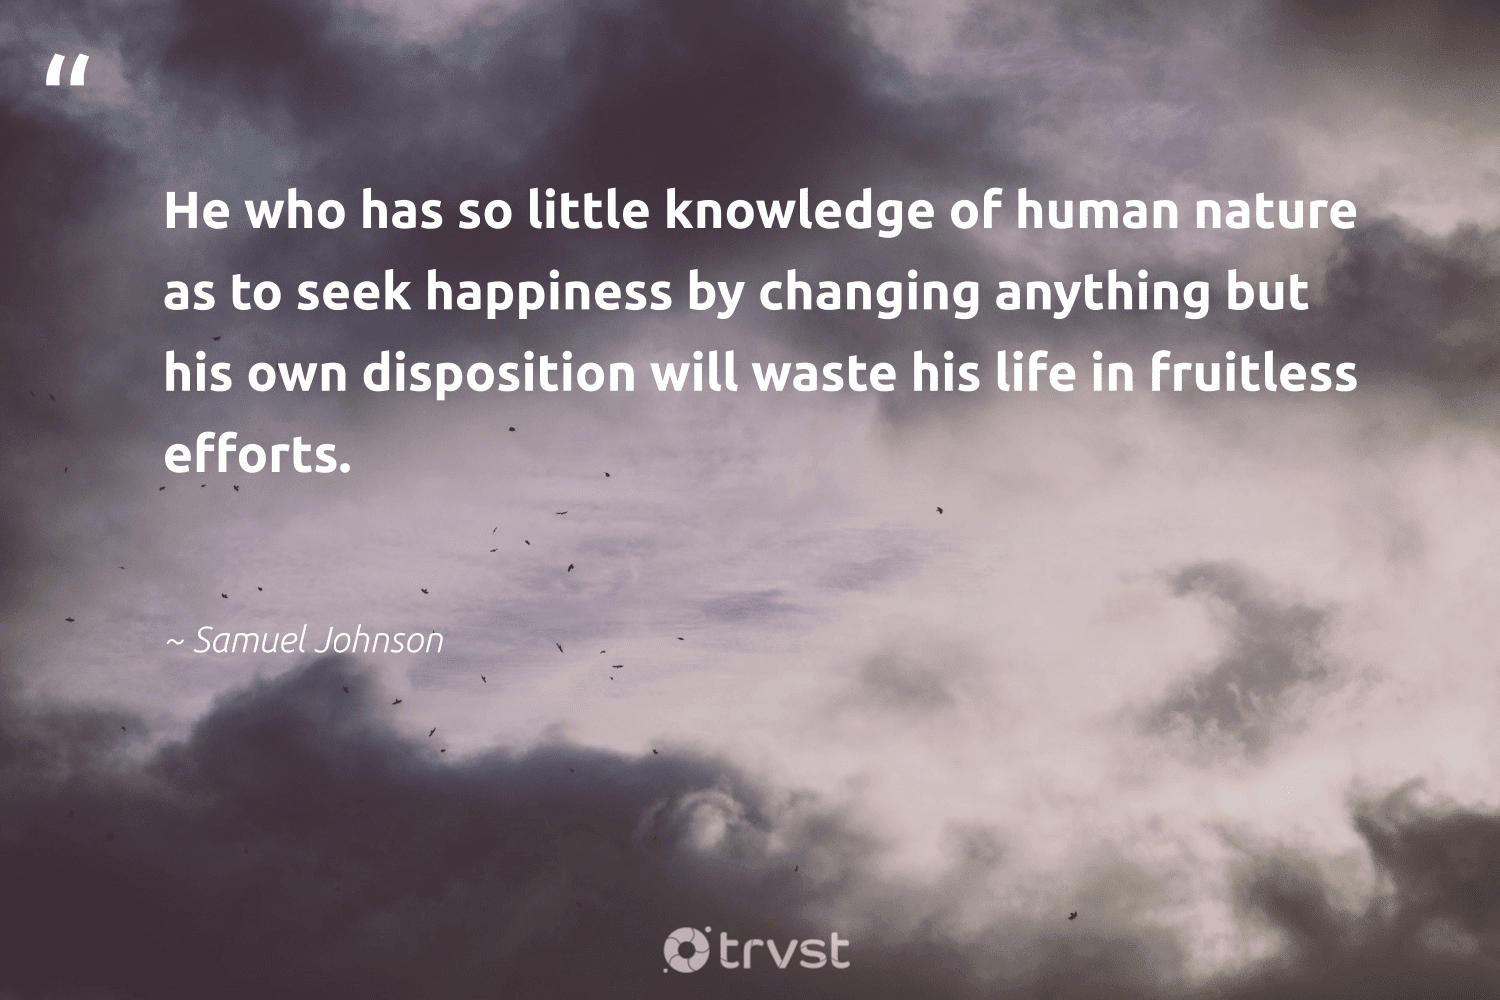 """""""He who has so little knowledge of human nature as to seek happiness by changing anything but his own disposition will waste his life in fruitless efforts.""""  - Samuel Johnson #trvst #quotes #waste #nature #happiness #conservation #nevergiveup #eco #planetearthfirst #earth #health #wildlifeplanet"""